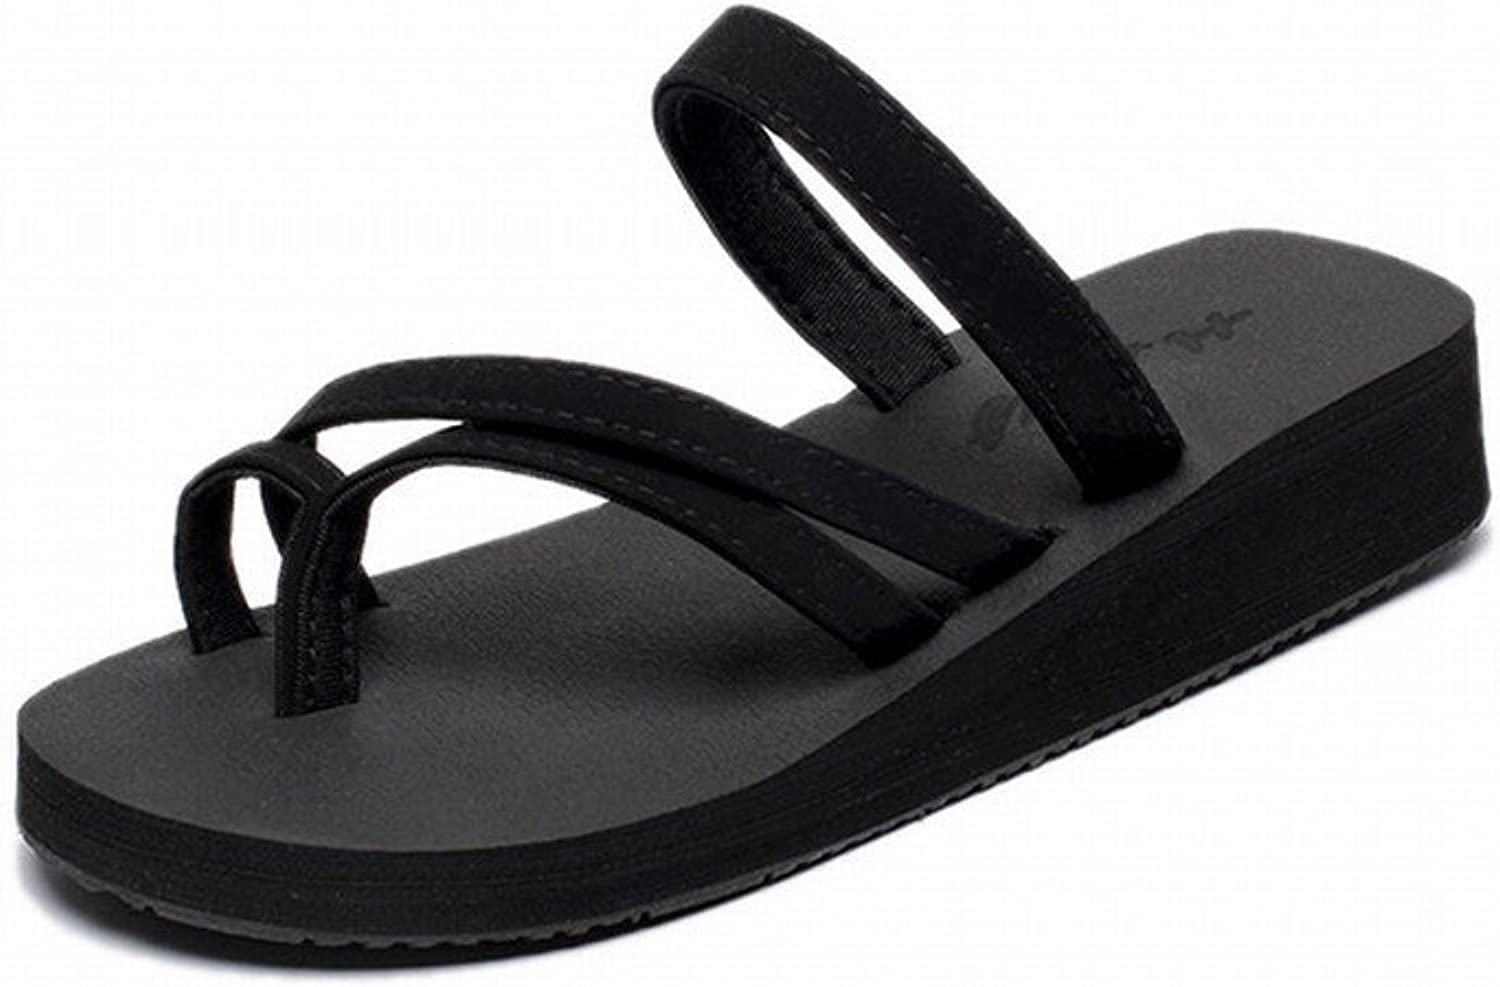 SED Slippers - Flip-Flops Women's Slope with Thick Sandals and Slippers Outside to Wear Non-Slip Beach Slippers